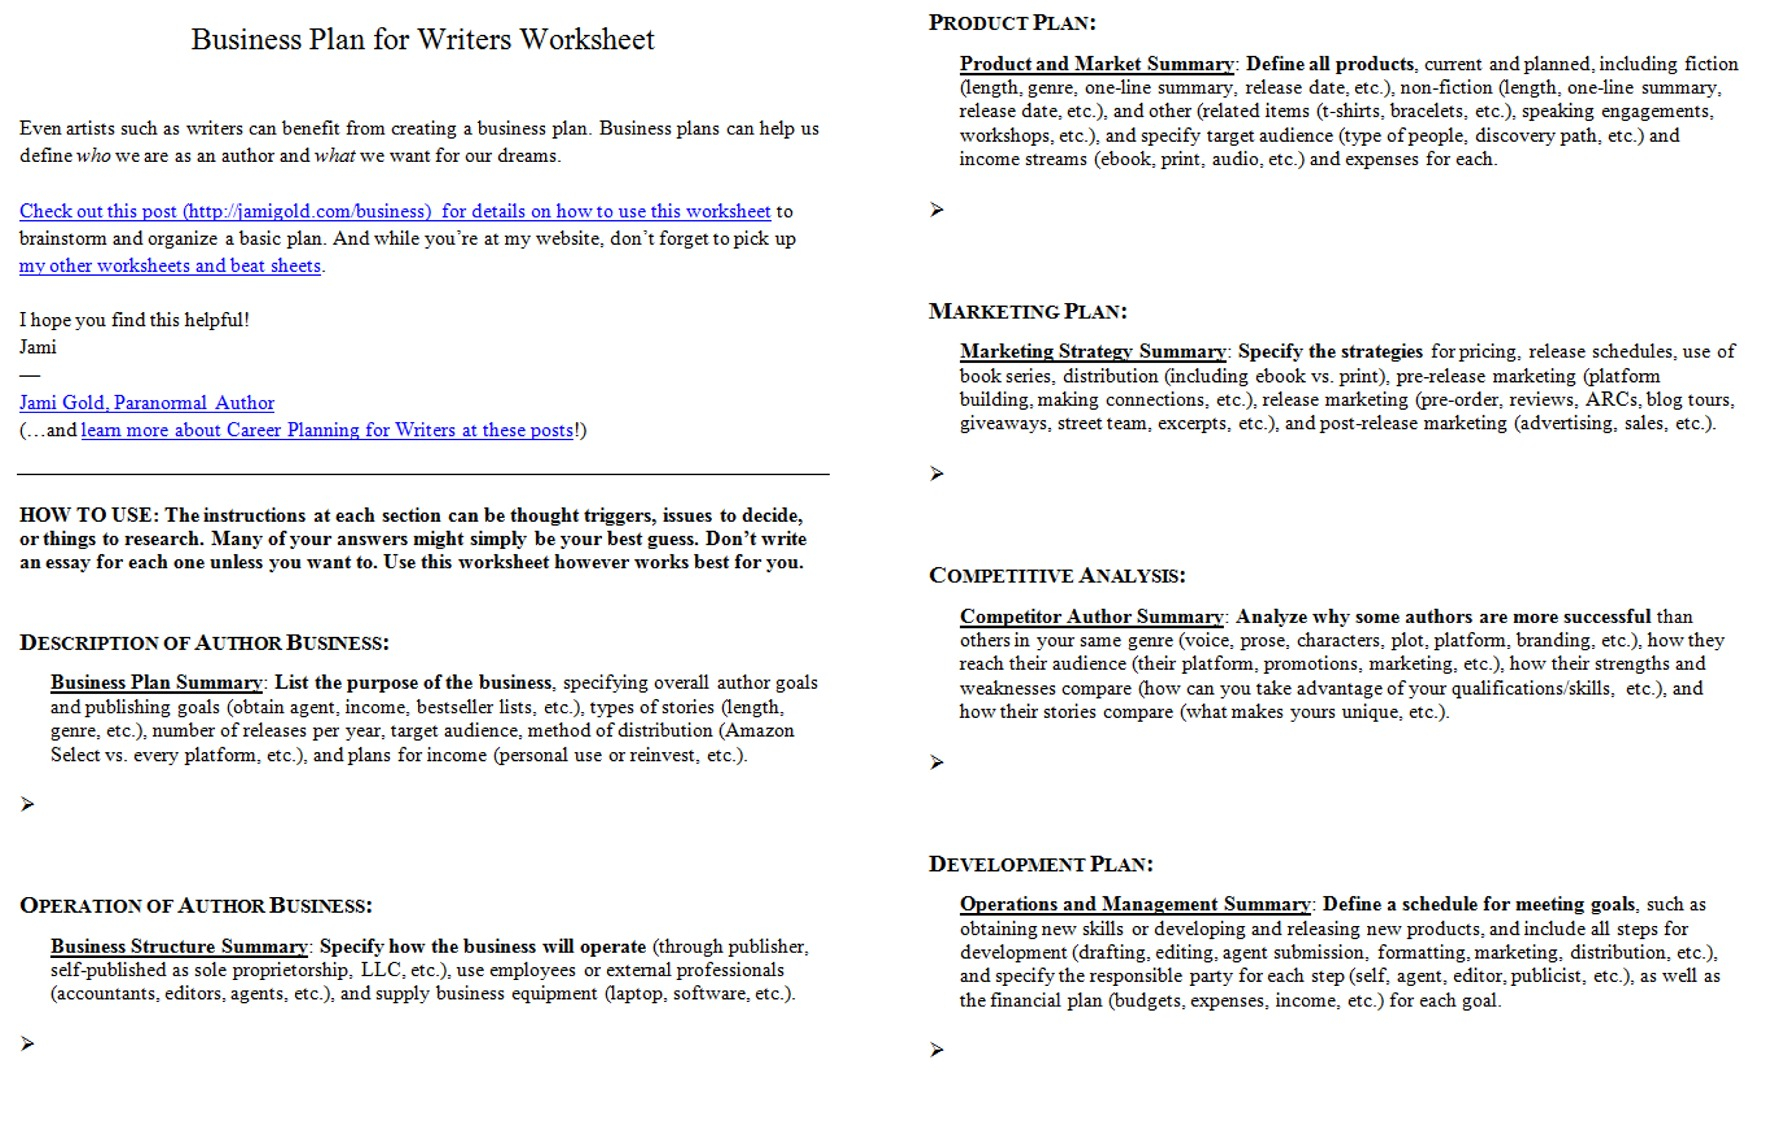 Weirdmailus  Unique Worksheets For Writers  Jami Gold Paranormal Author With Remarkable Screen Shot Of Both Pages Of The Business Plan For Writers Worksheet With Cute Irregular Plural Worksheets Also Math  Grade Worksheets In Addition Teaching Without Worksheets And Rd Grade History Worksheets As Well As Code Worksheets Additionally Front End Estimation Worksheets From Jamigoldcom With Weirdmailus  Remarkable Worksheets For Writers  Jami Gold Paranormal Author With Cute Screen Shot Of Both Pages Of The Business Plan For Writers Worksheet And Unique Irregular Plural Worksheets Also Math  Grade Worksheets In Addition Teaching Without Worksheets From Jamigoldcom